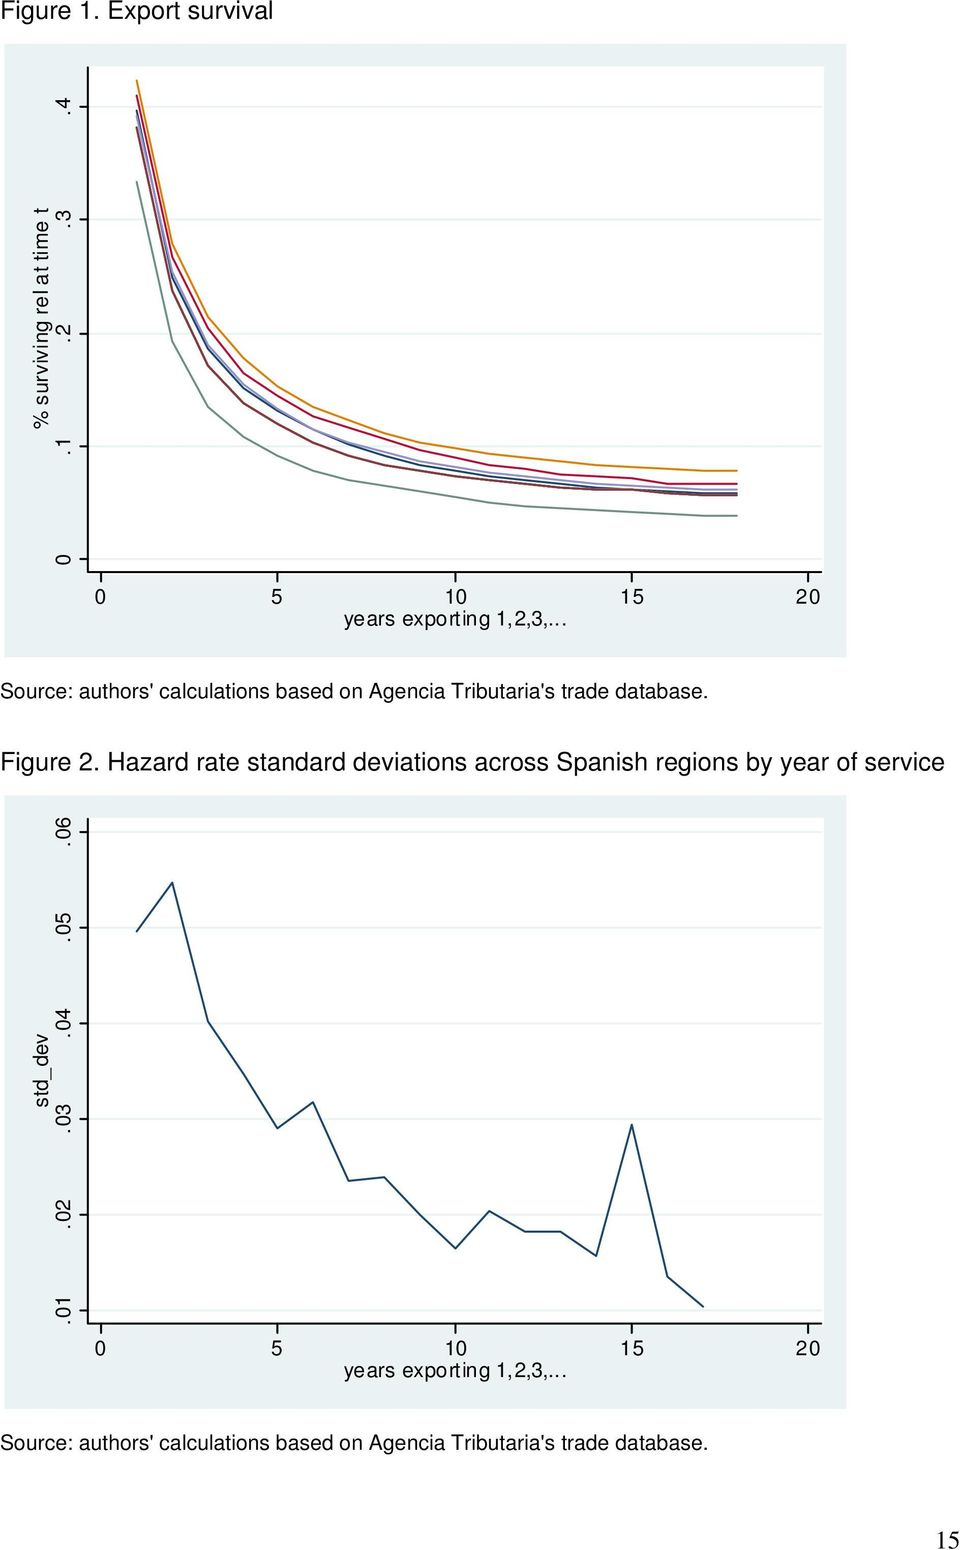 Hazard rate standard deviations across Spanish regions by year of service std_dev.01.02.03.04.05.